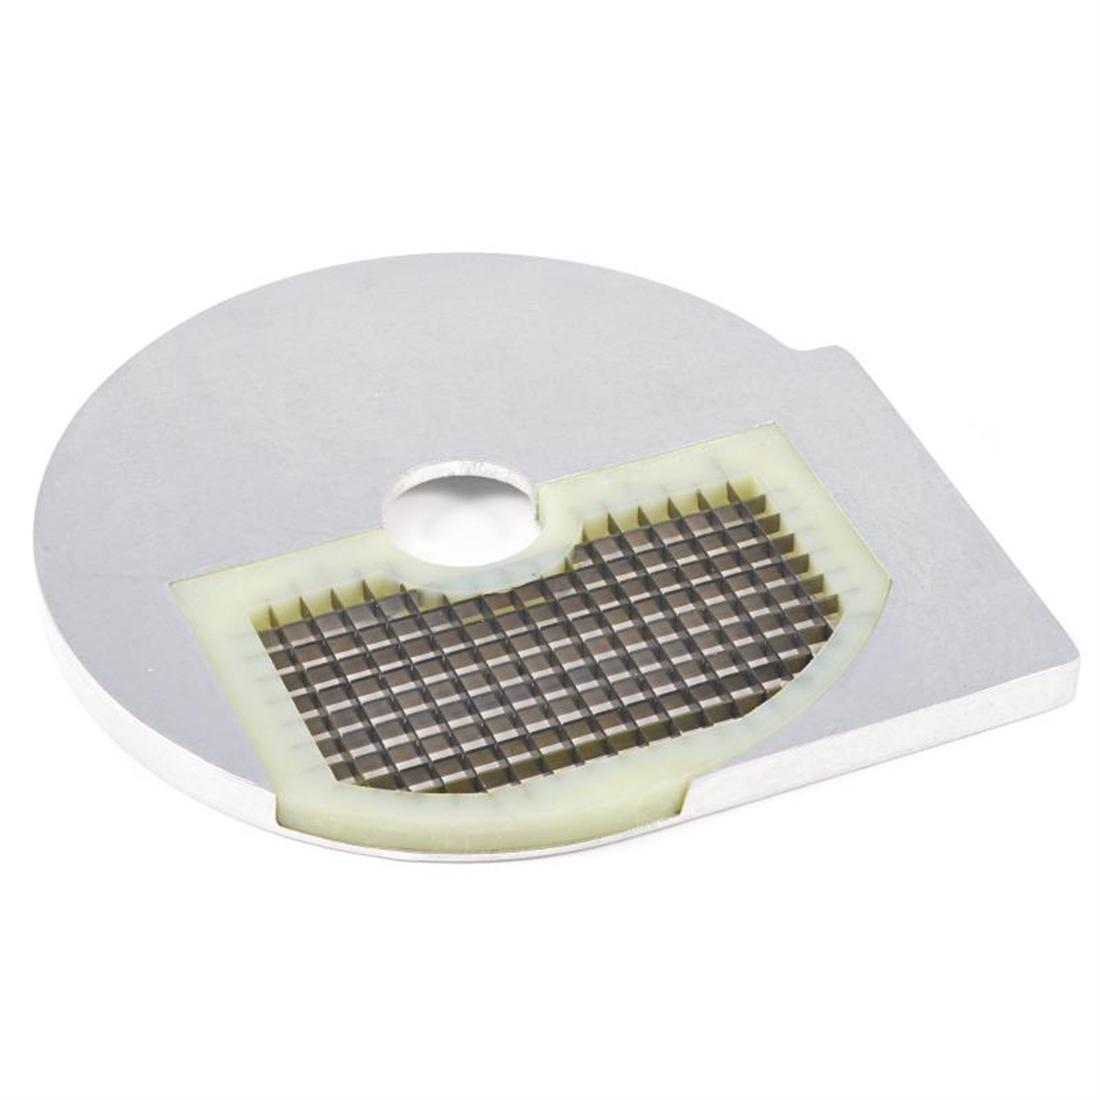 Buffalo 8x8mm Dicing Disc (not suitable for dicing onions or tomatoes.) - AA088